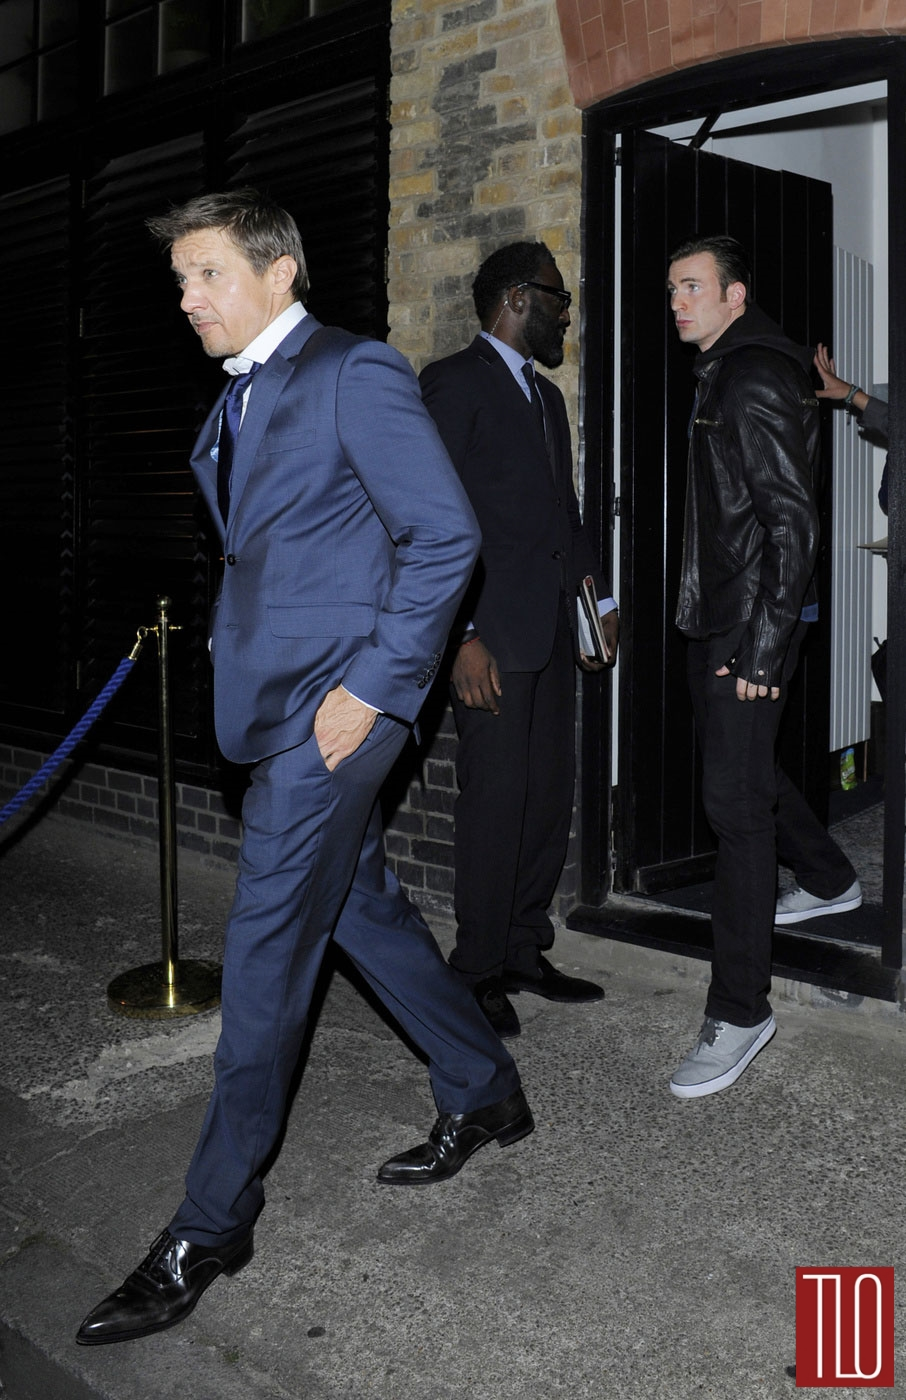 Jeremy-Renner-Chris-Evans-Chiltern-Firehouse-GOTSLondon-Tom-Lorenzo-Site-TLO (1)